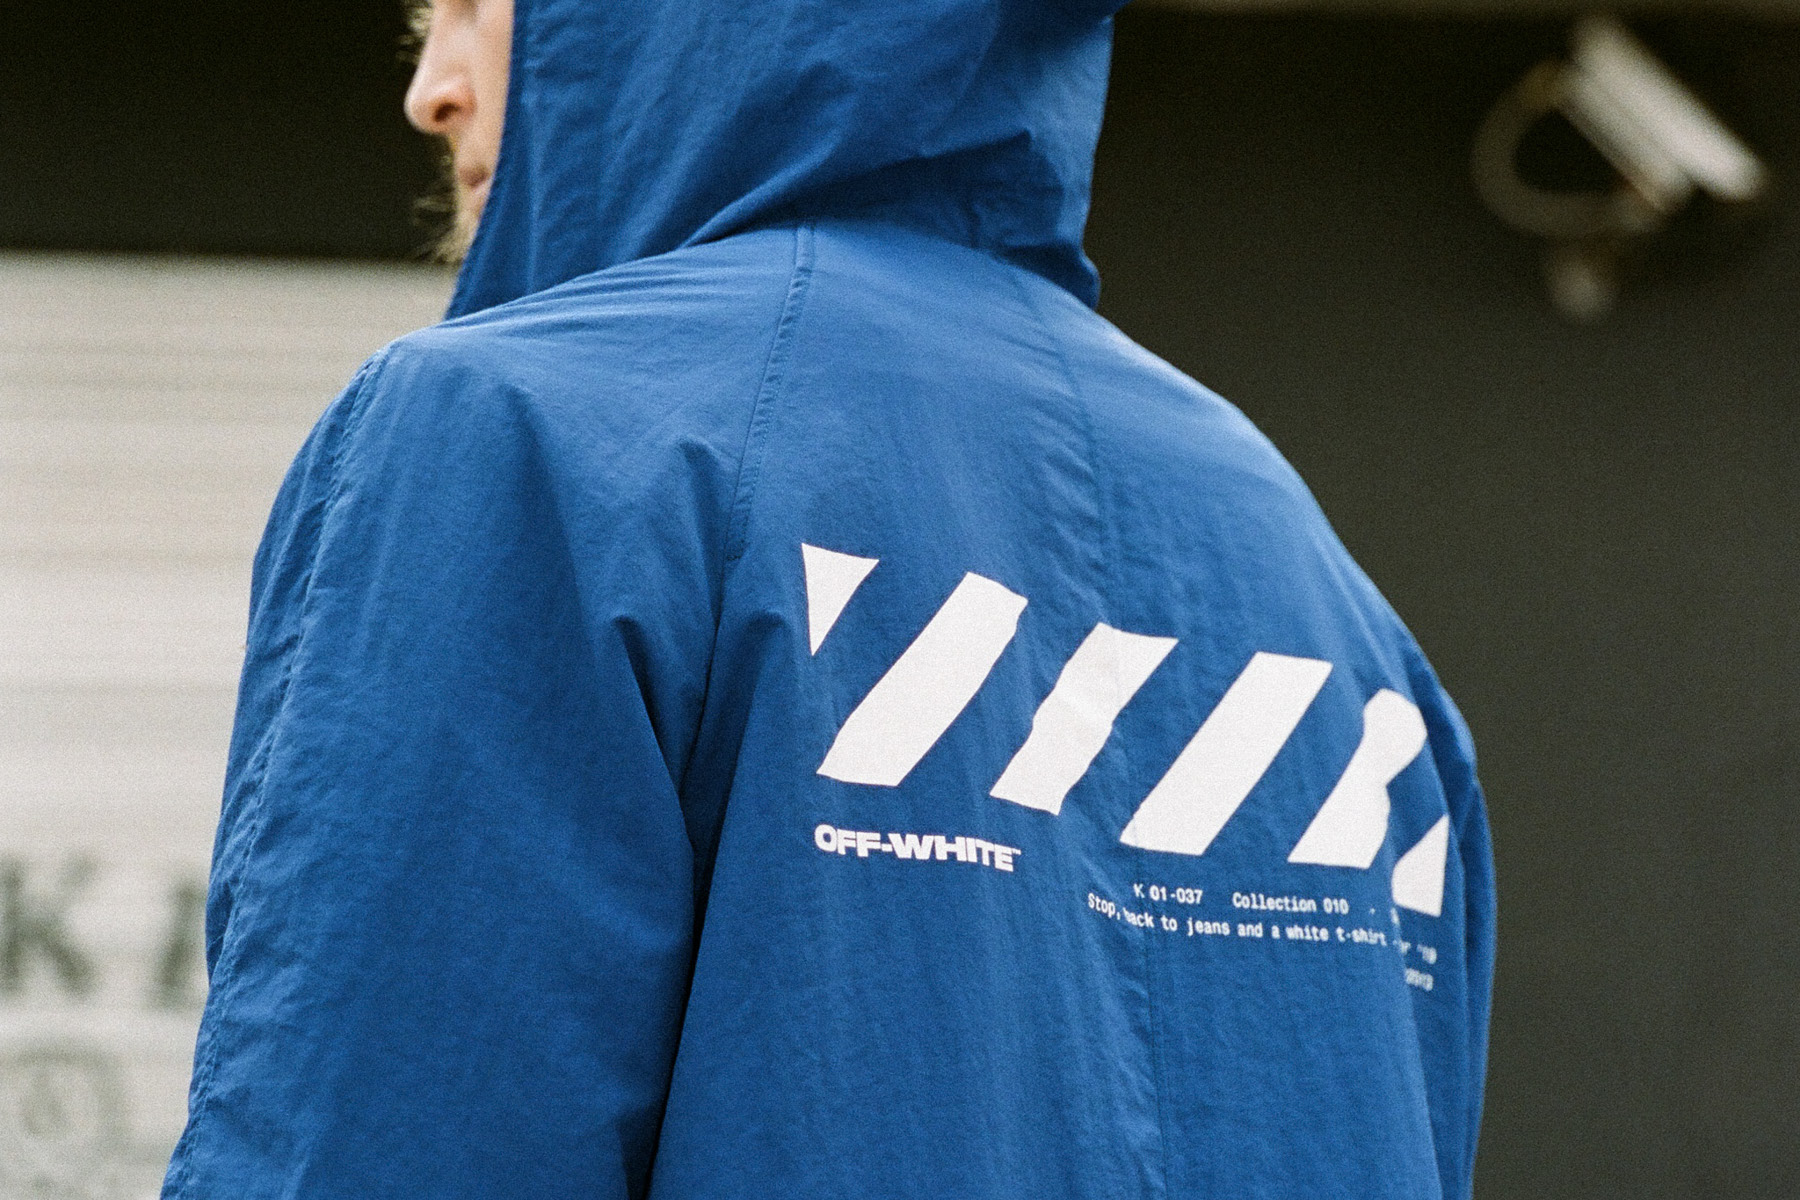 off-white-spring-summer-2019-jim-stark-collection-new-arrivals-15